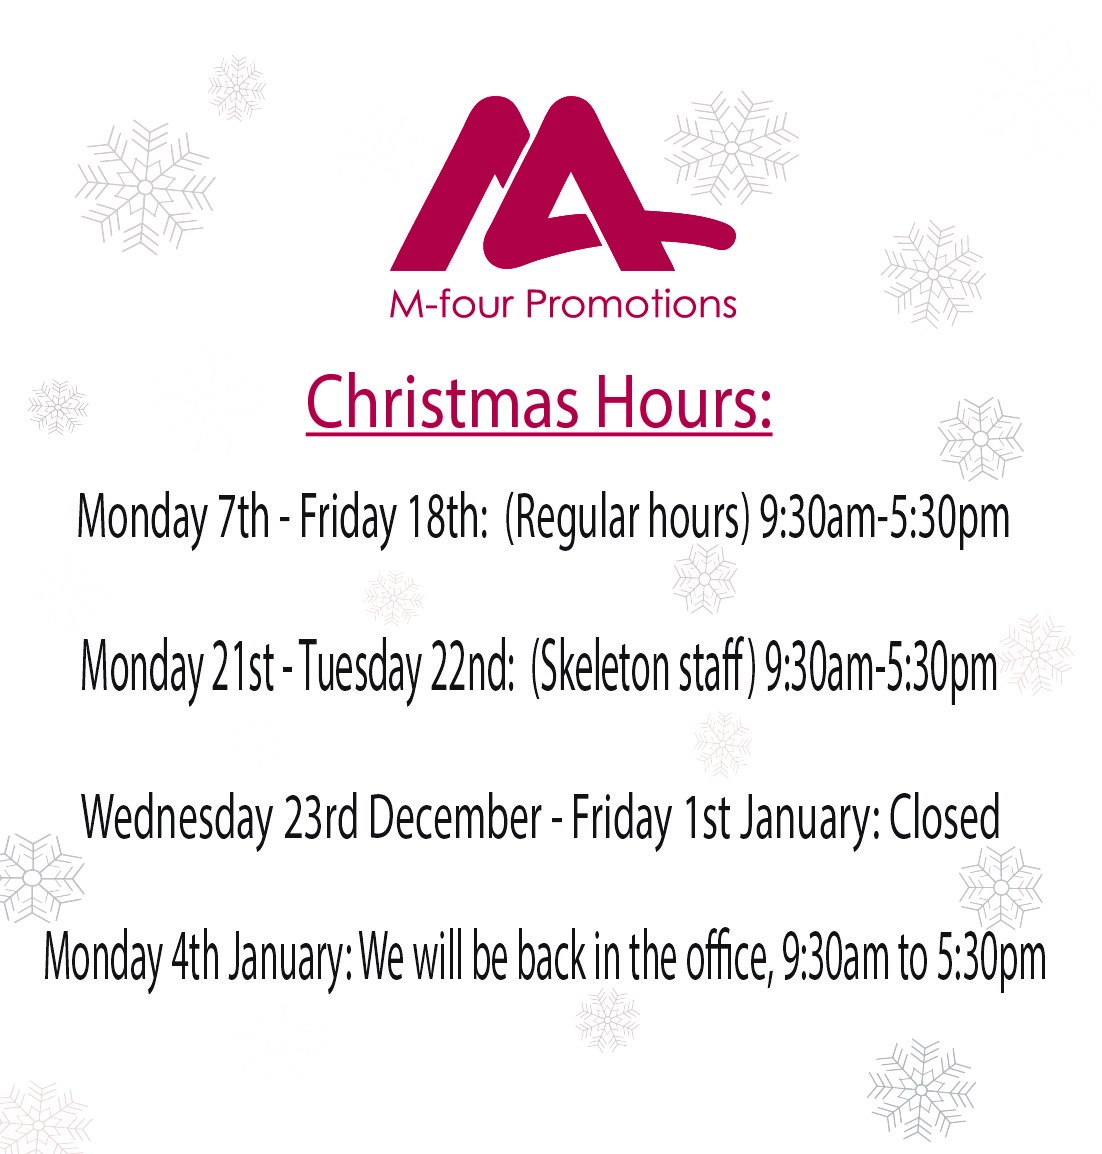 Office Closed Monday And Tuesday For Christmas 2021 M Four Promotions On Twitter Only 17 Sleeps Until Christmas Are You In The Festive Spirit Yet We Certainly Are We Will Be Closing The Office On Friday 18th December And We